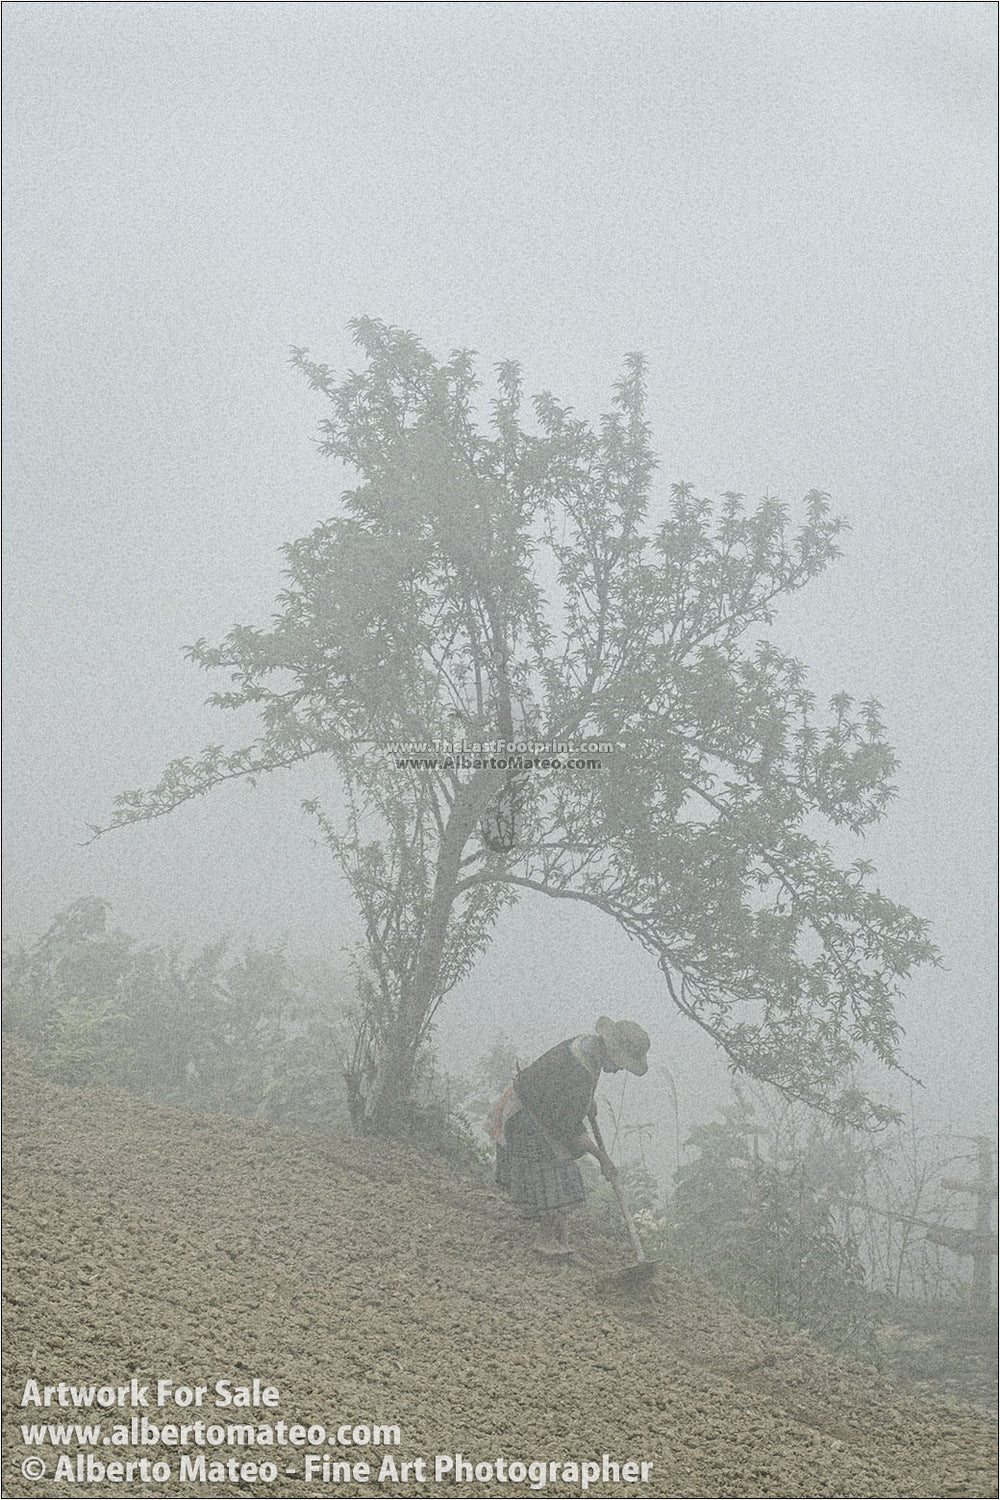 Hmong woman sowing, Bac Ha, Vietnam.